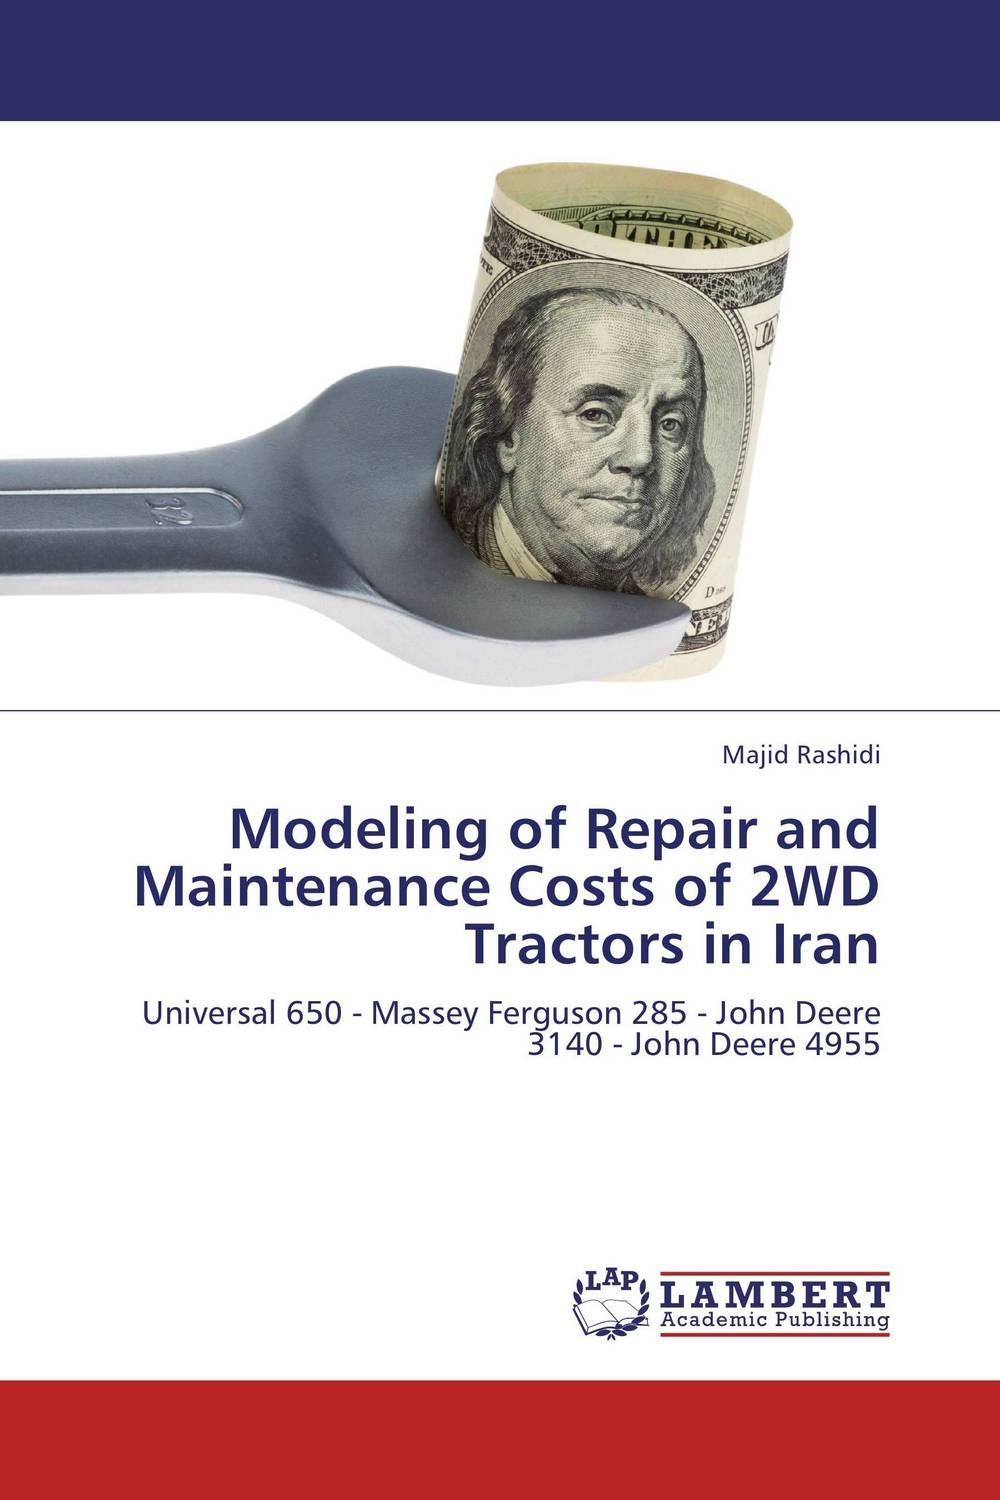 Modeling of Repair and Maintenance Costs of 2WD Tractors in Iran